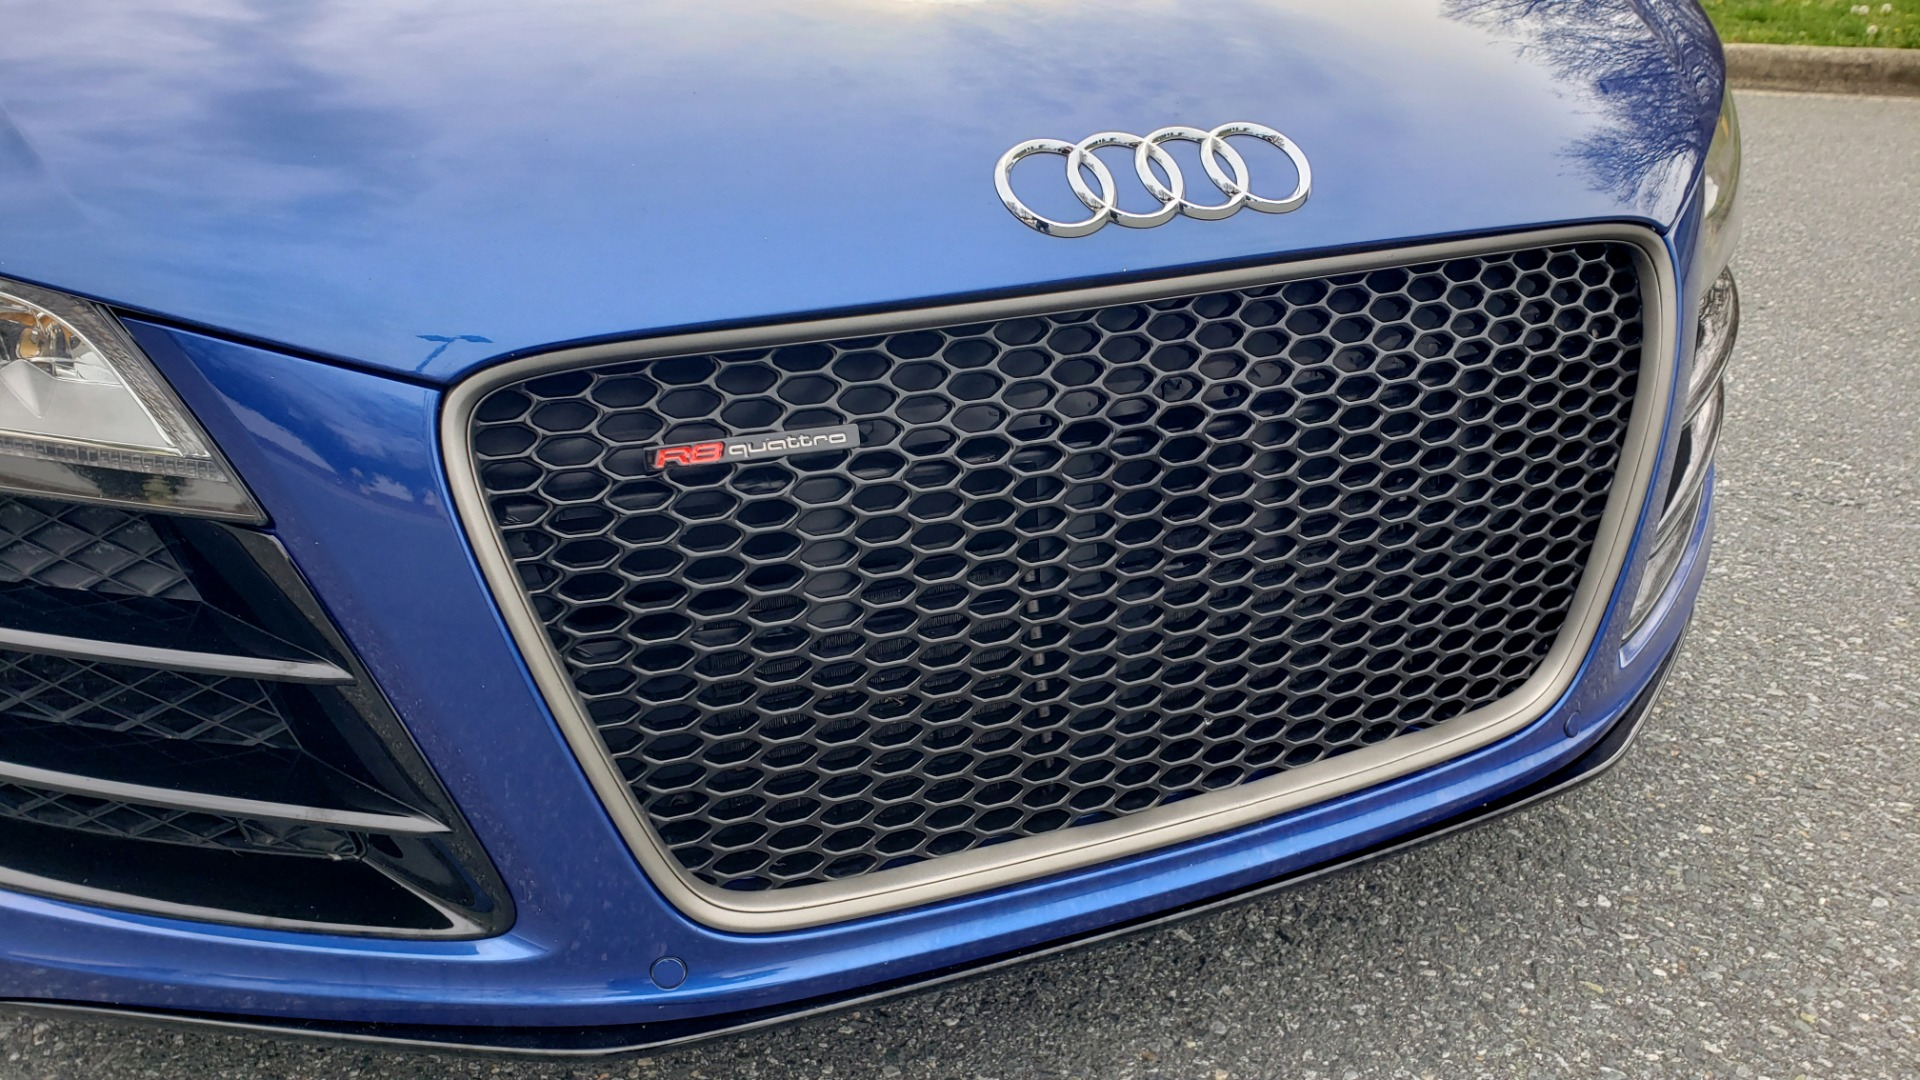 Used 2010 Audi R8 5.2L V10 / AWD / NAV / B&O SND / HTD STS / CUSTOM EXH & WHEELS for sale $78,000 at Formula Imports in Charlotte NC 28227 27